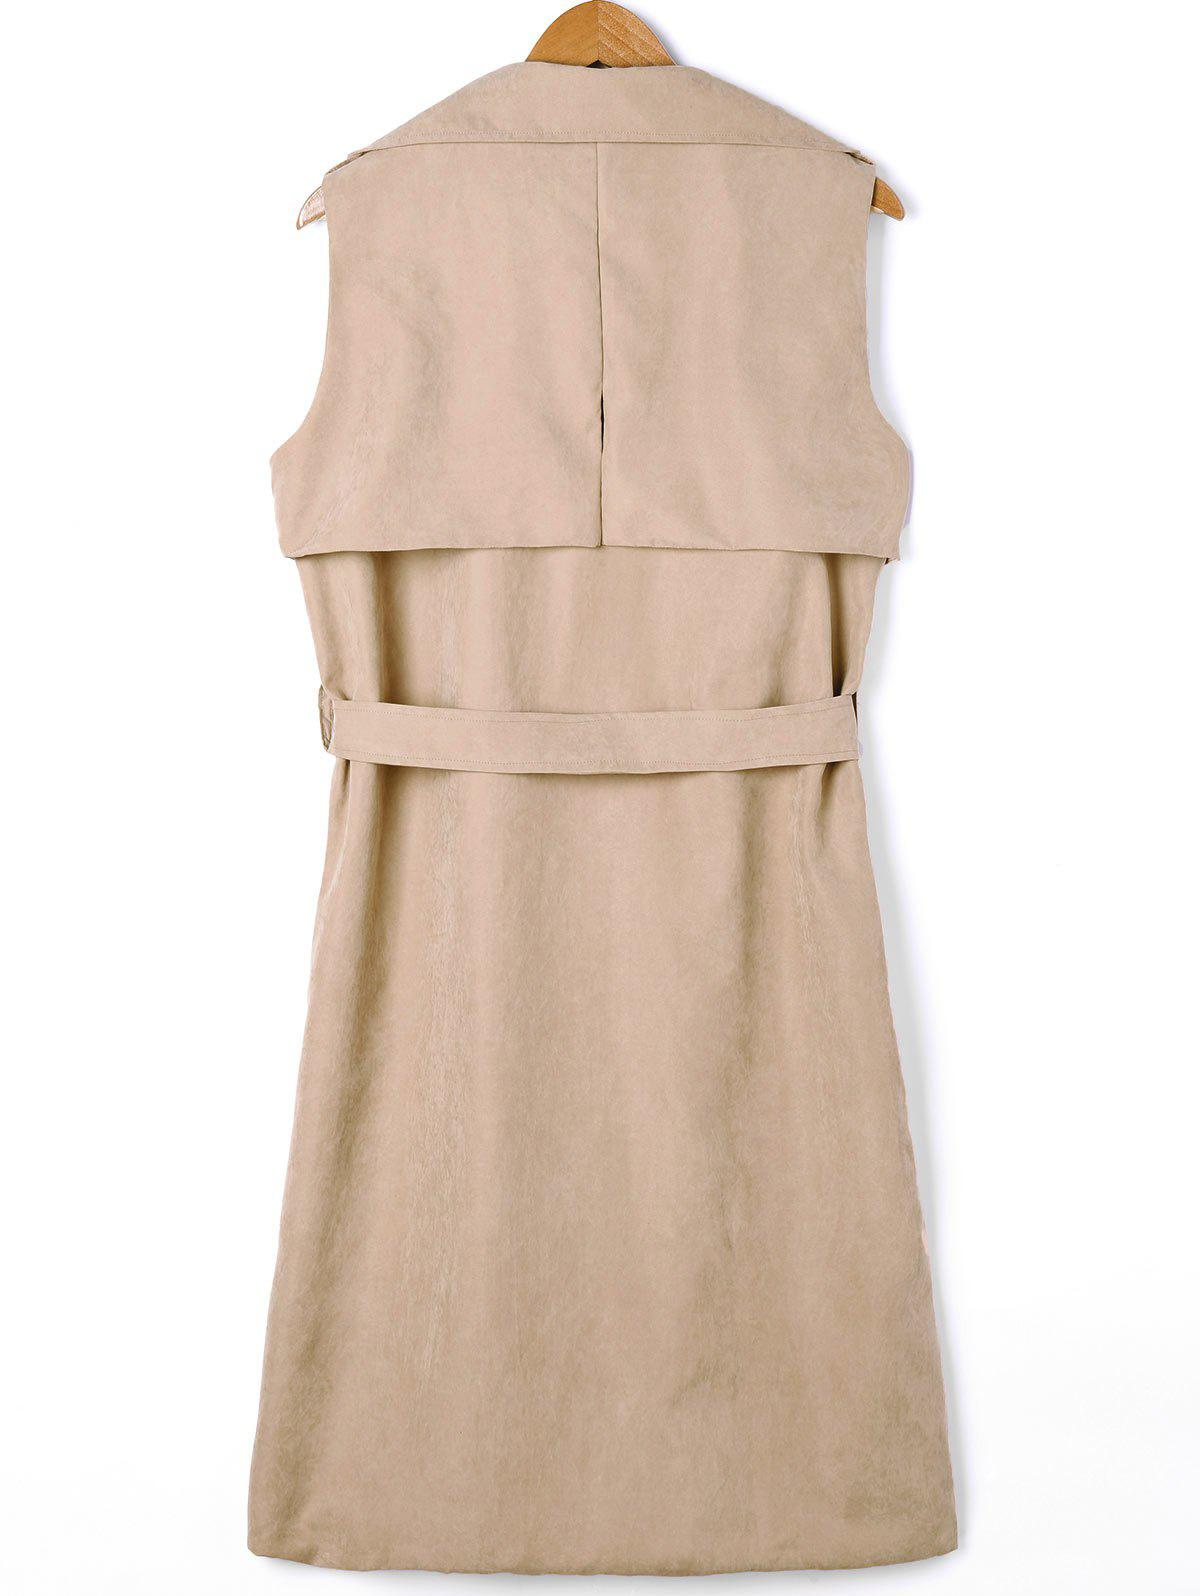 Plus Size Double Breasted Longline Waistcoat with Belt - LIGHT KHAKI 5XL